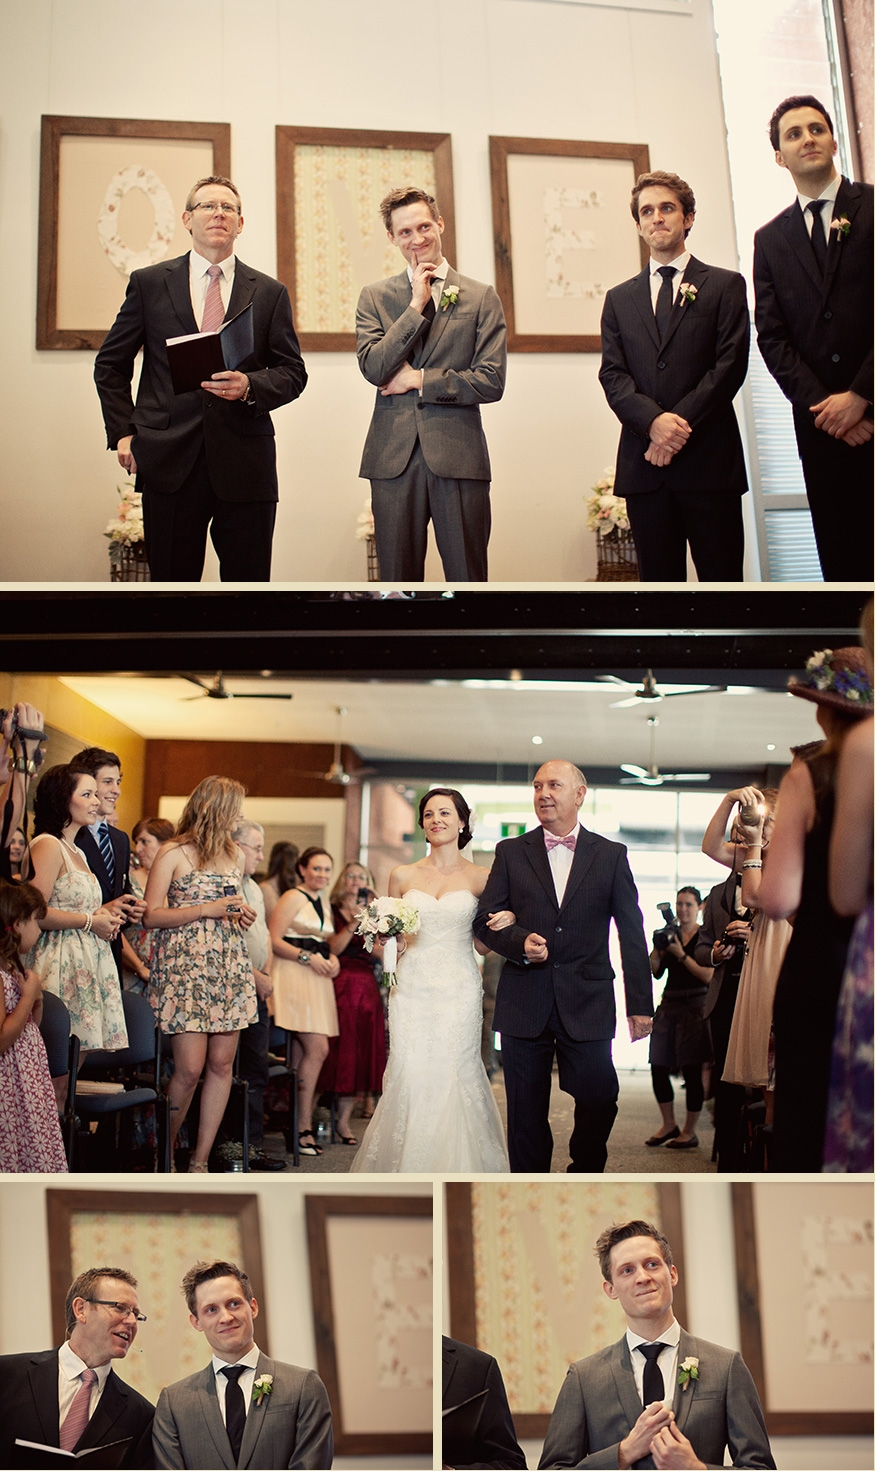 Brisbane Wedding Phoographer Blog-collage-1326245853819